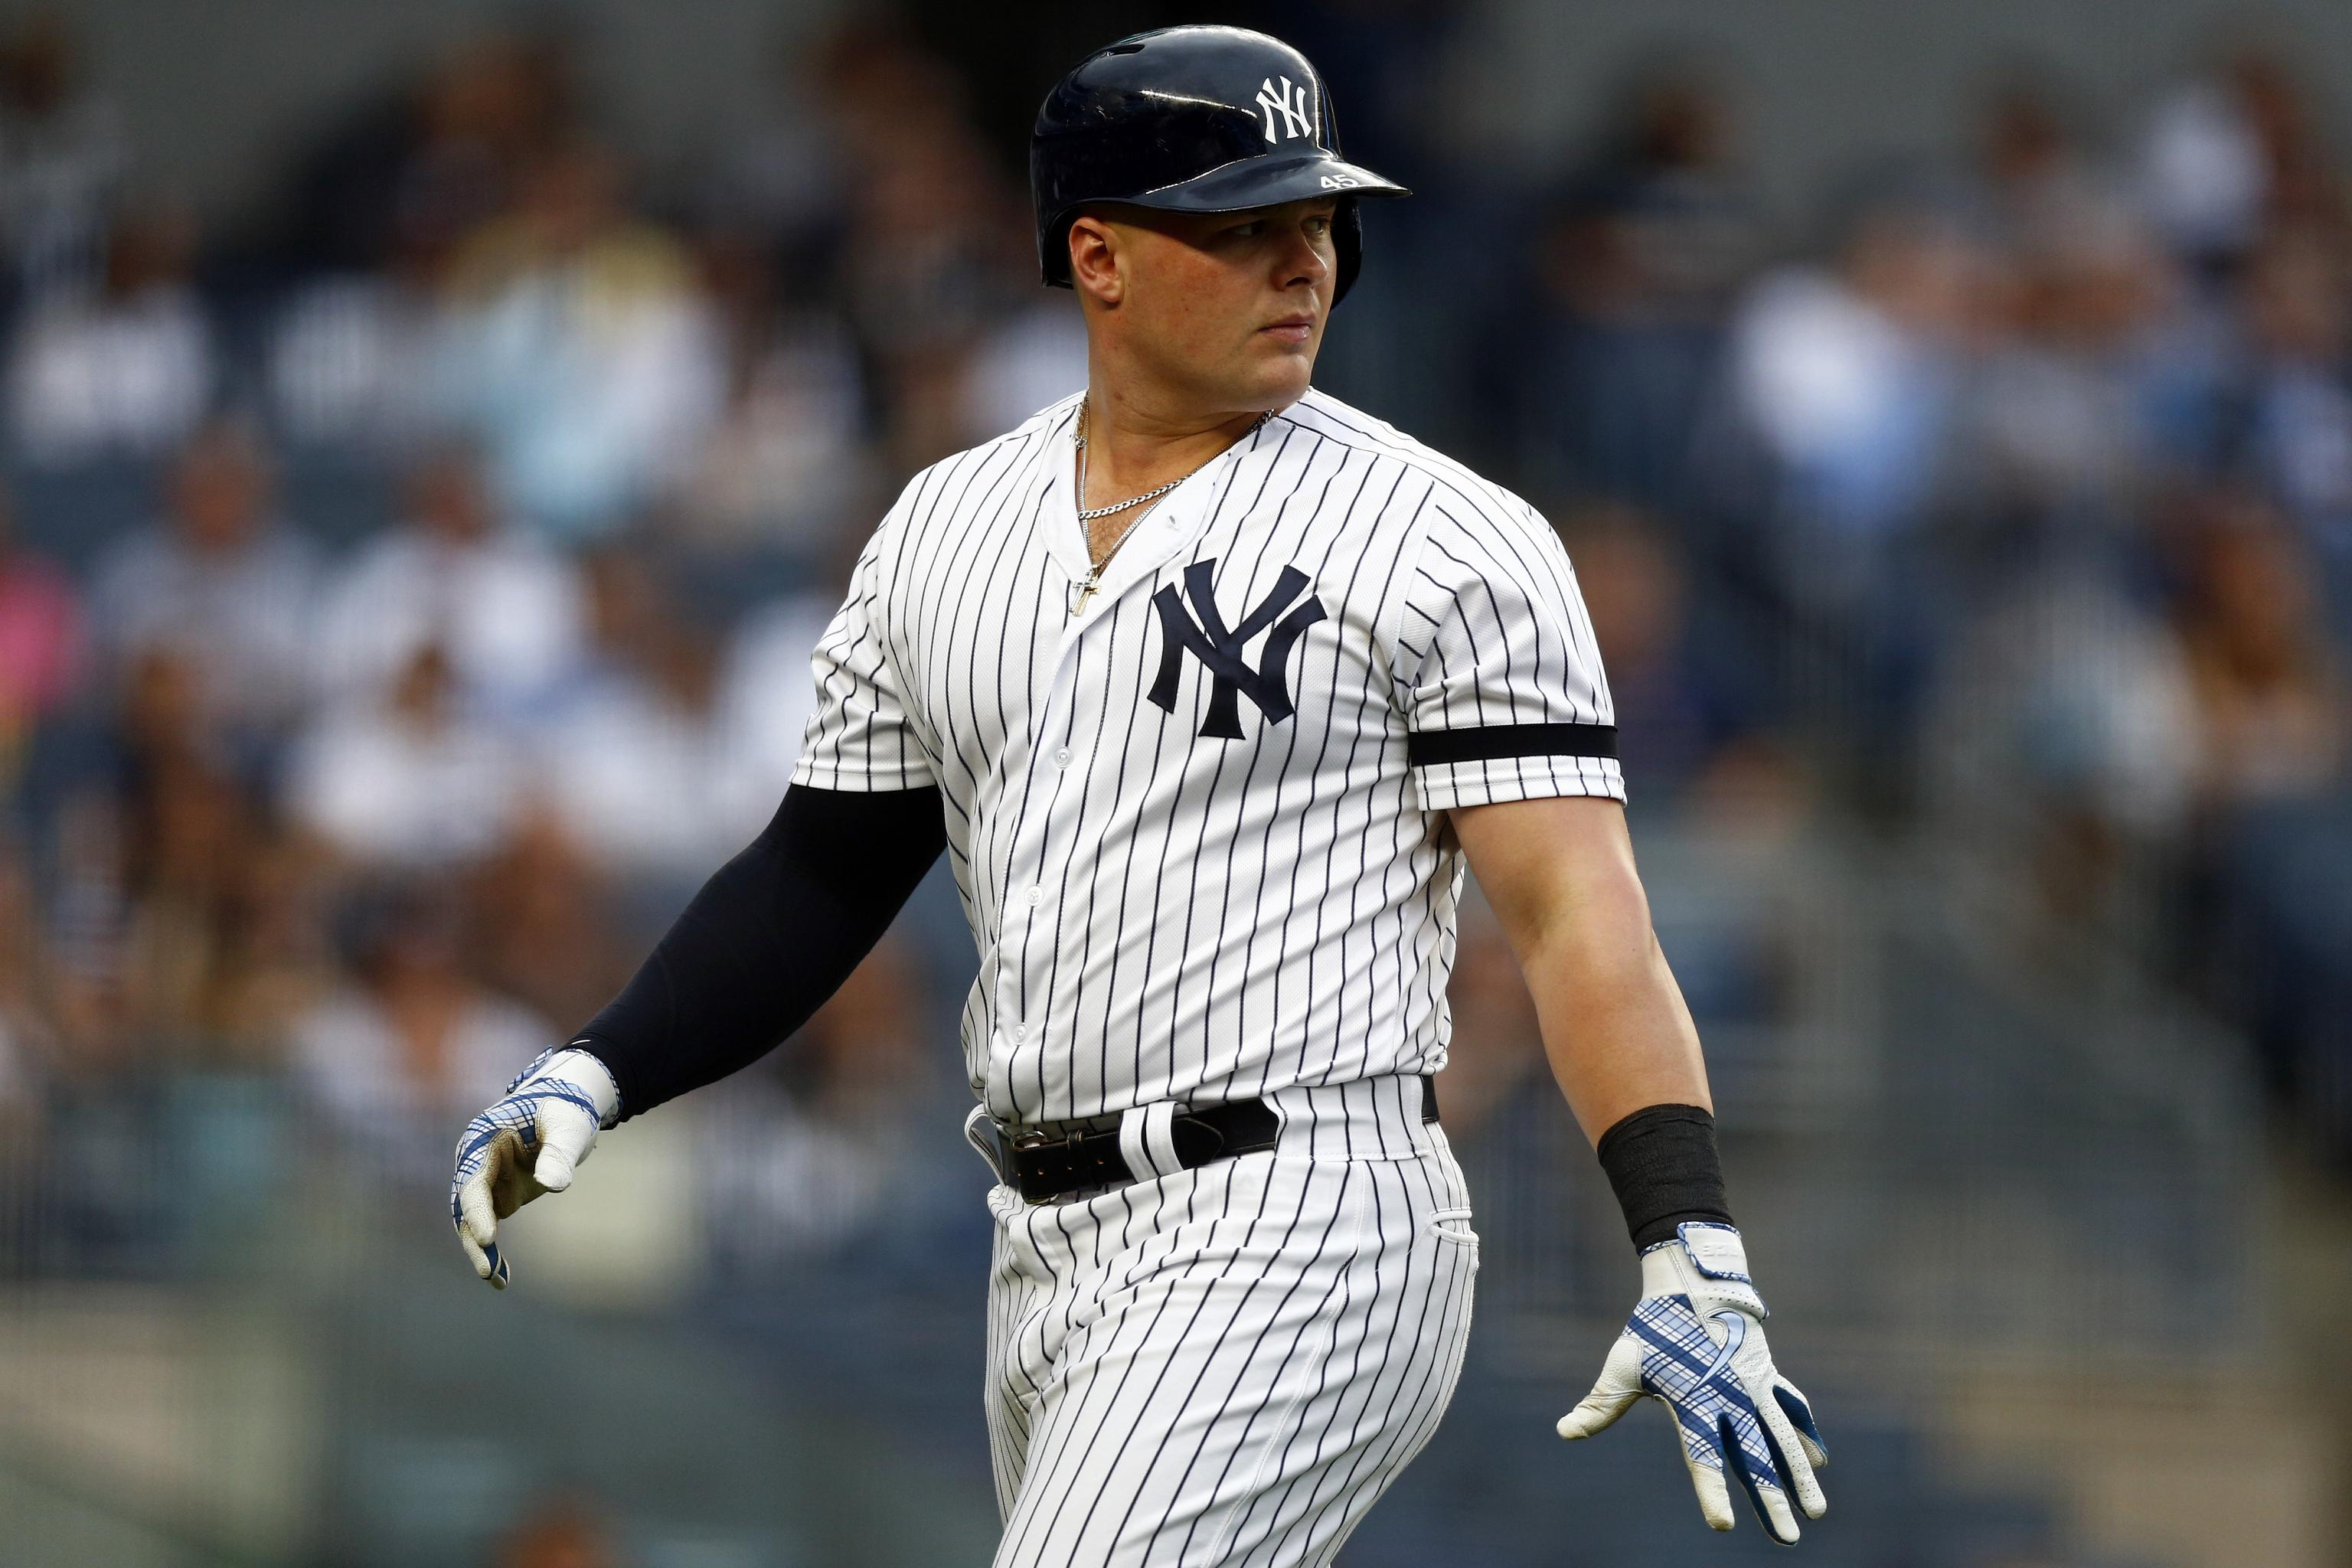 newest 62225 3668c Yankees' Luke Voit Placed on IL After Abdominal Injury ...